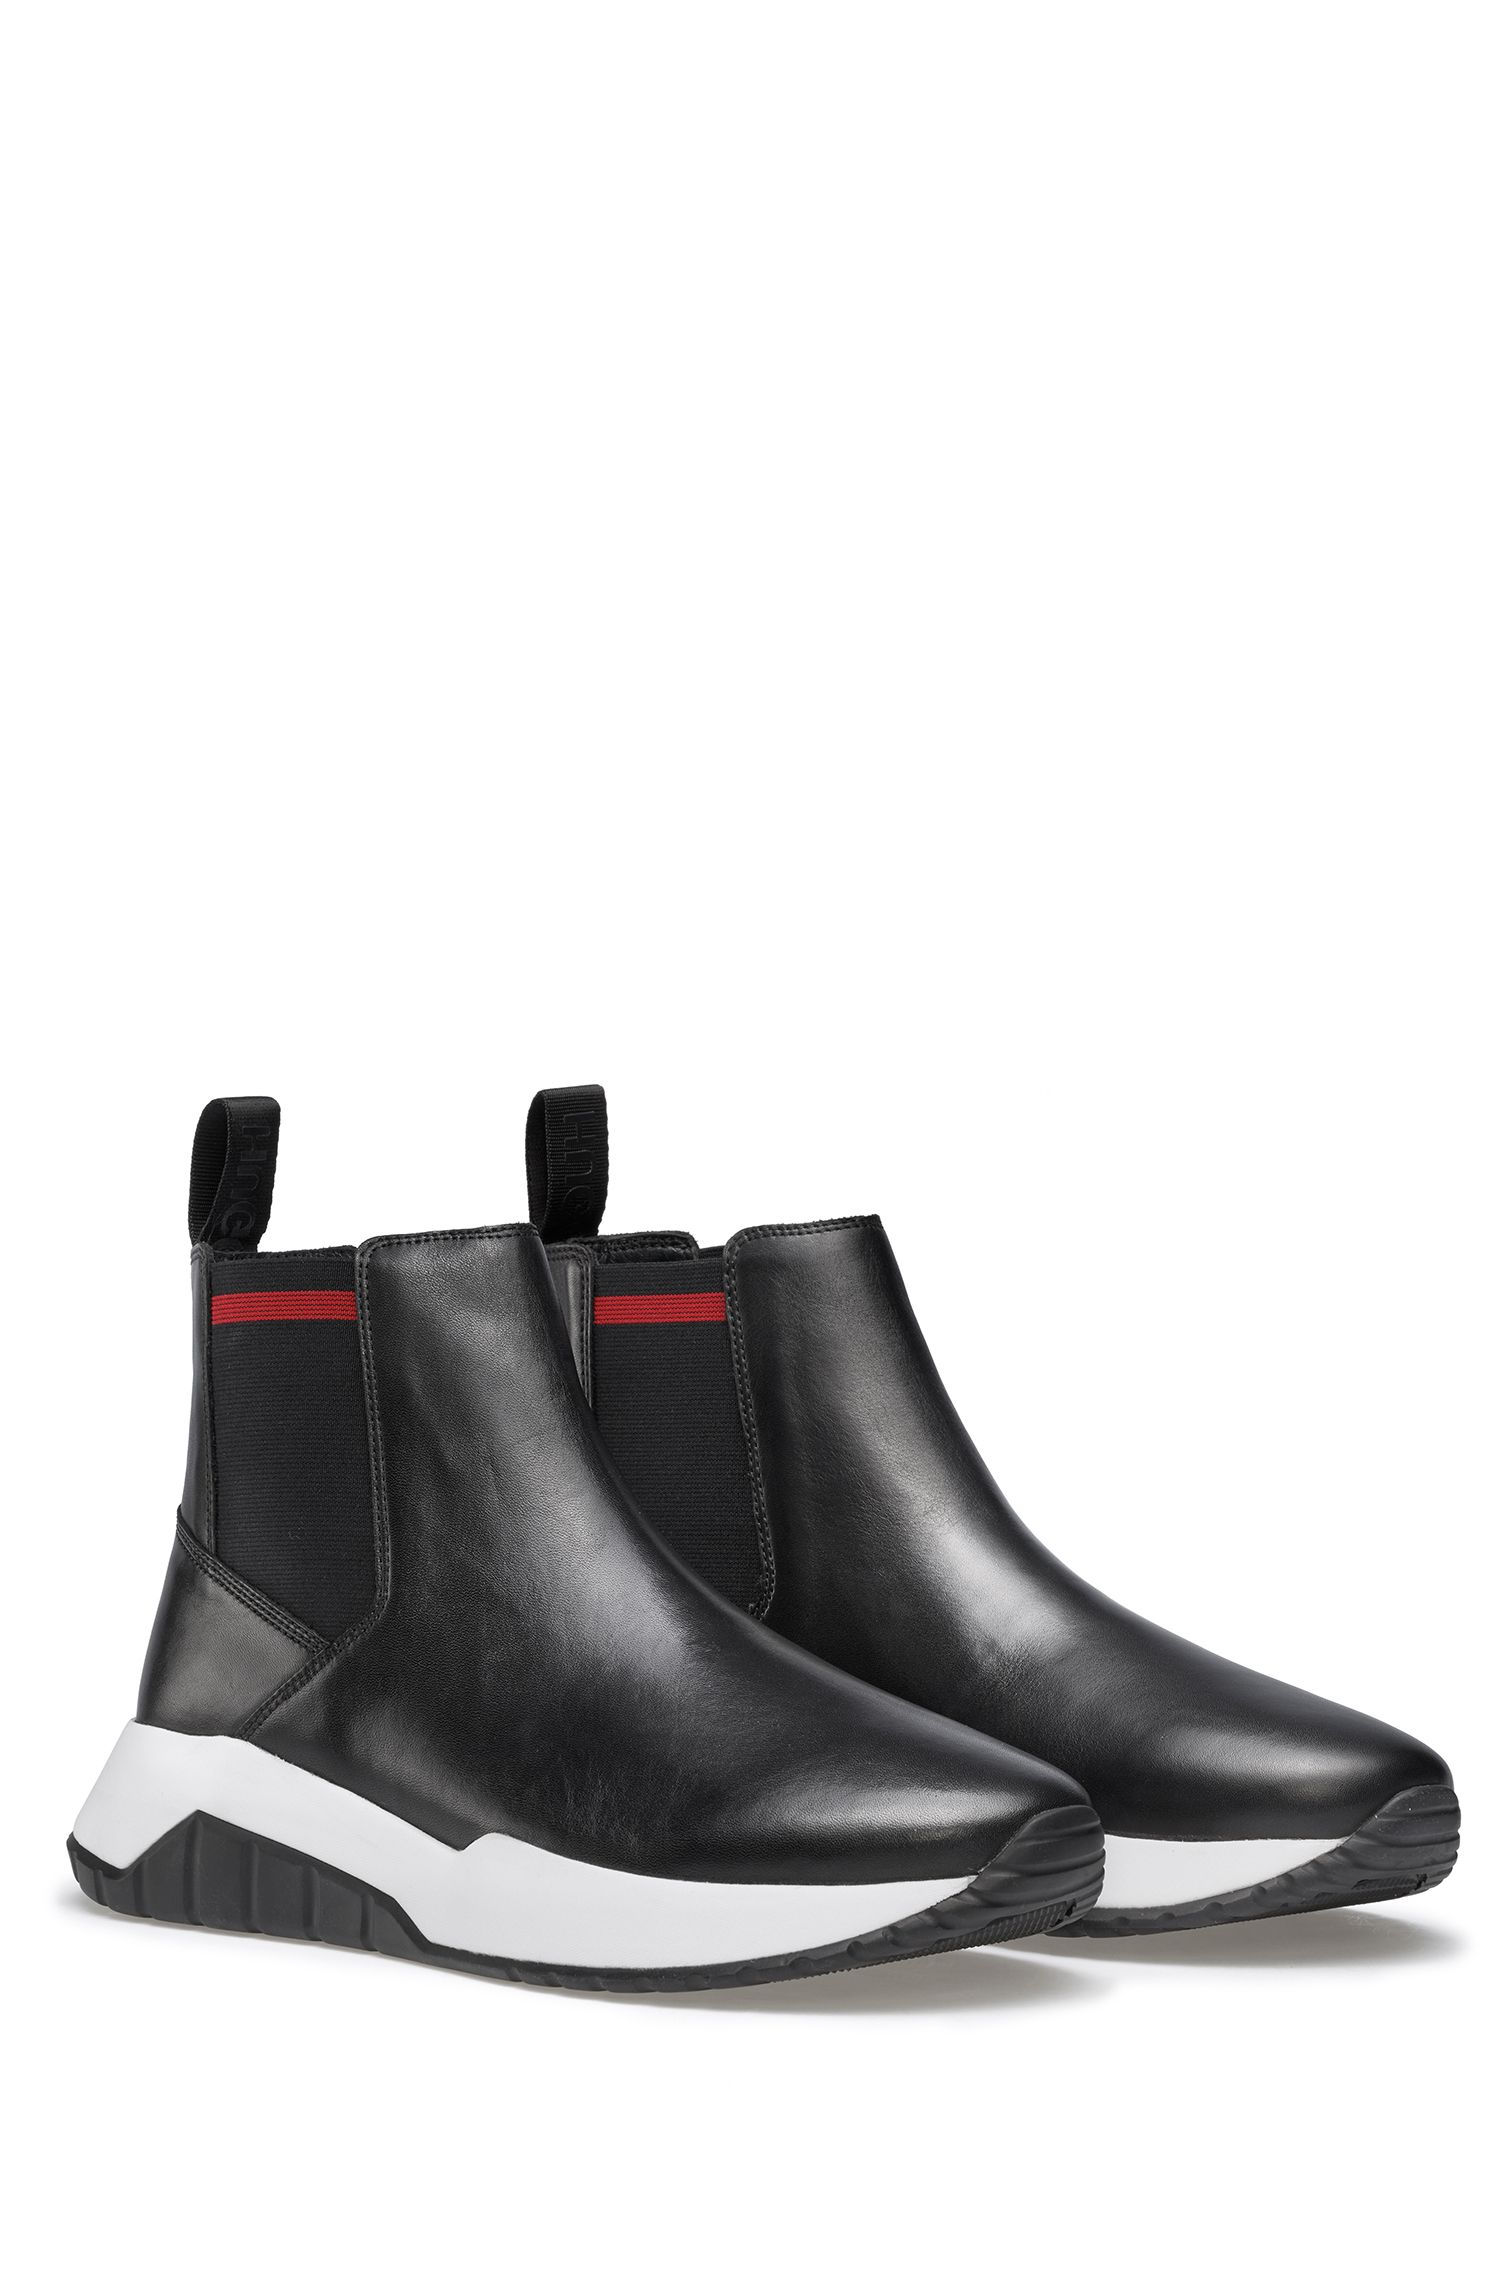 Chelsea boots in nappa leather with contrast outsole, Black